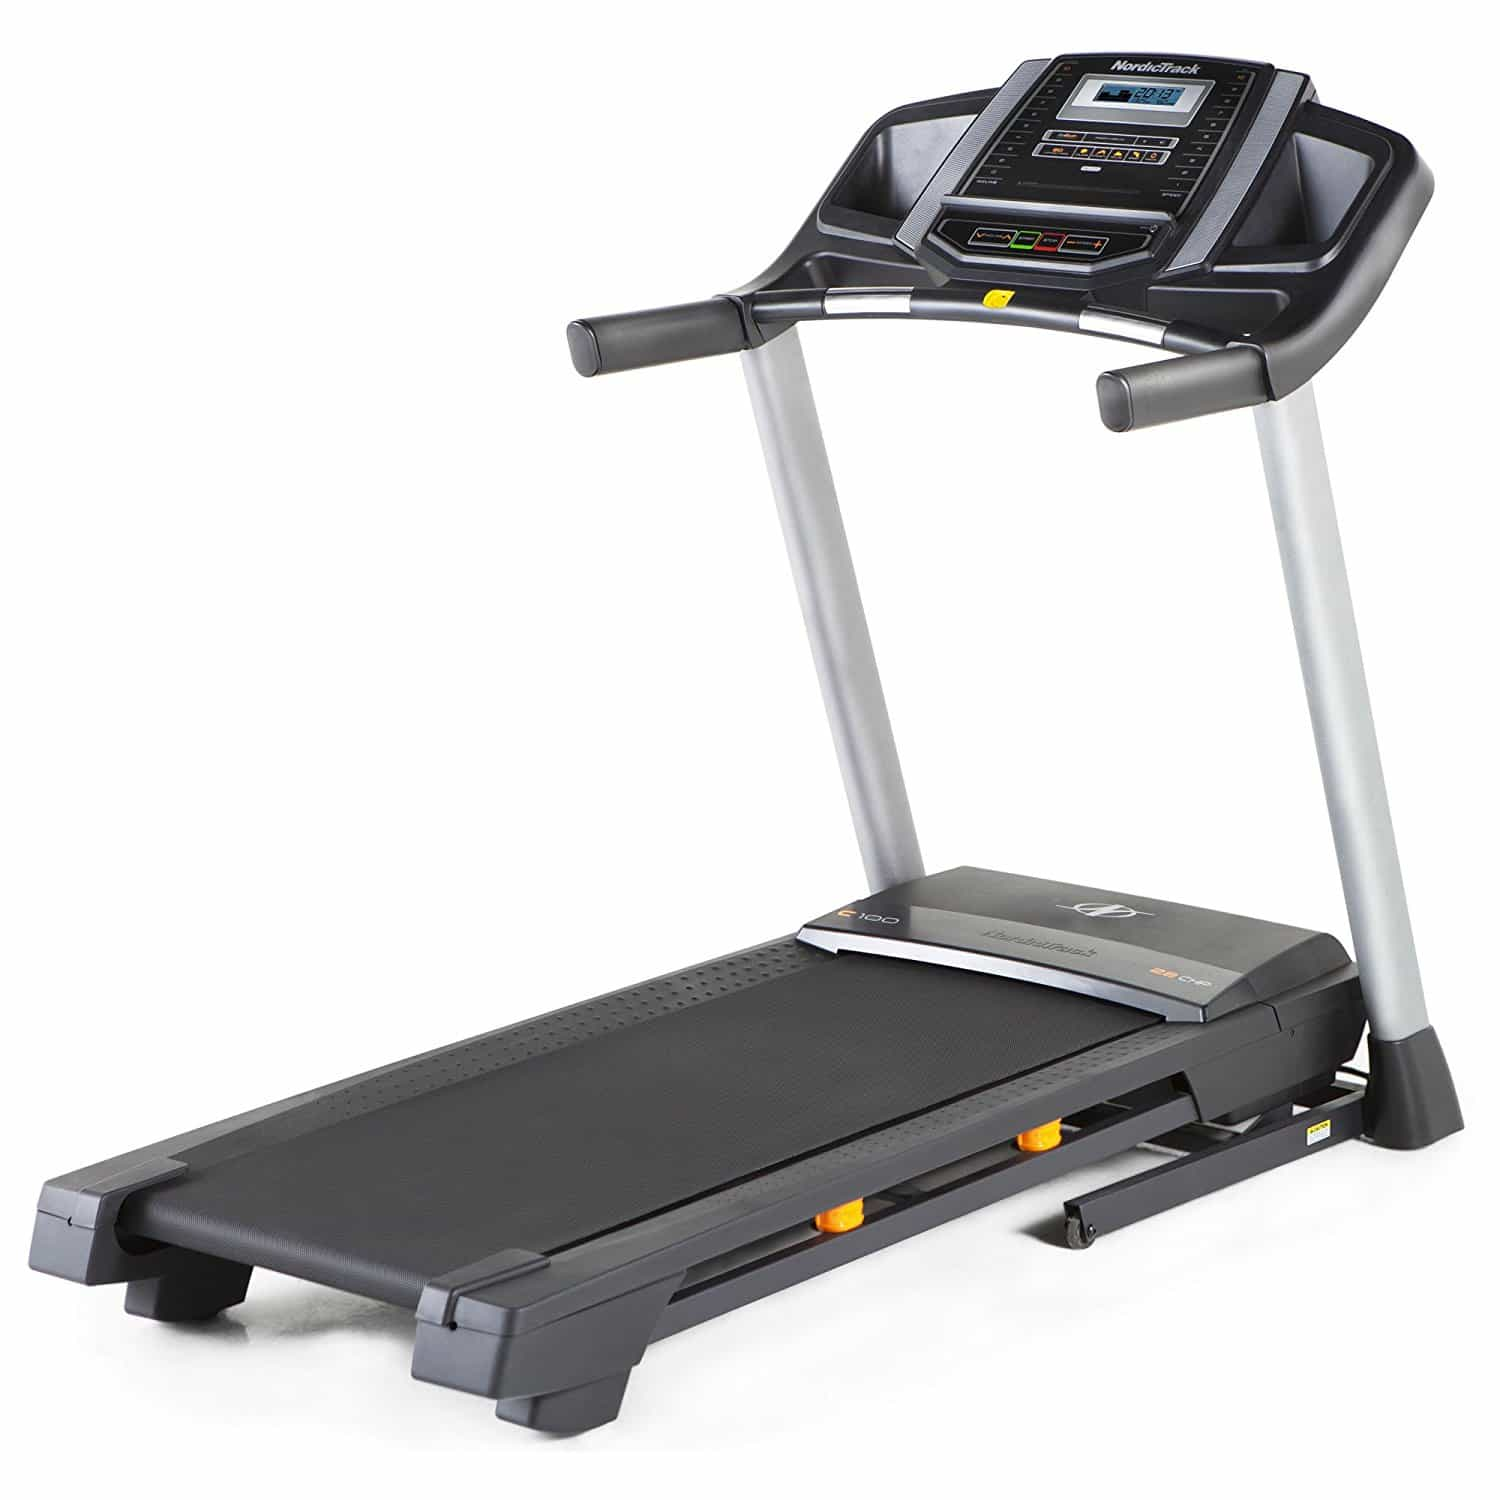 NordicTrack C100 (2.5 CHP) Treadmill Review